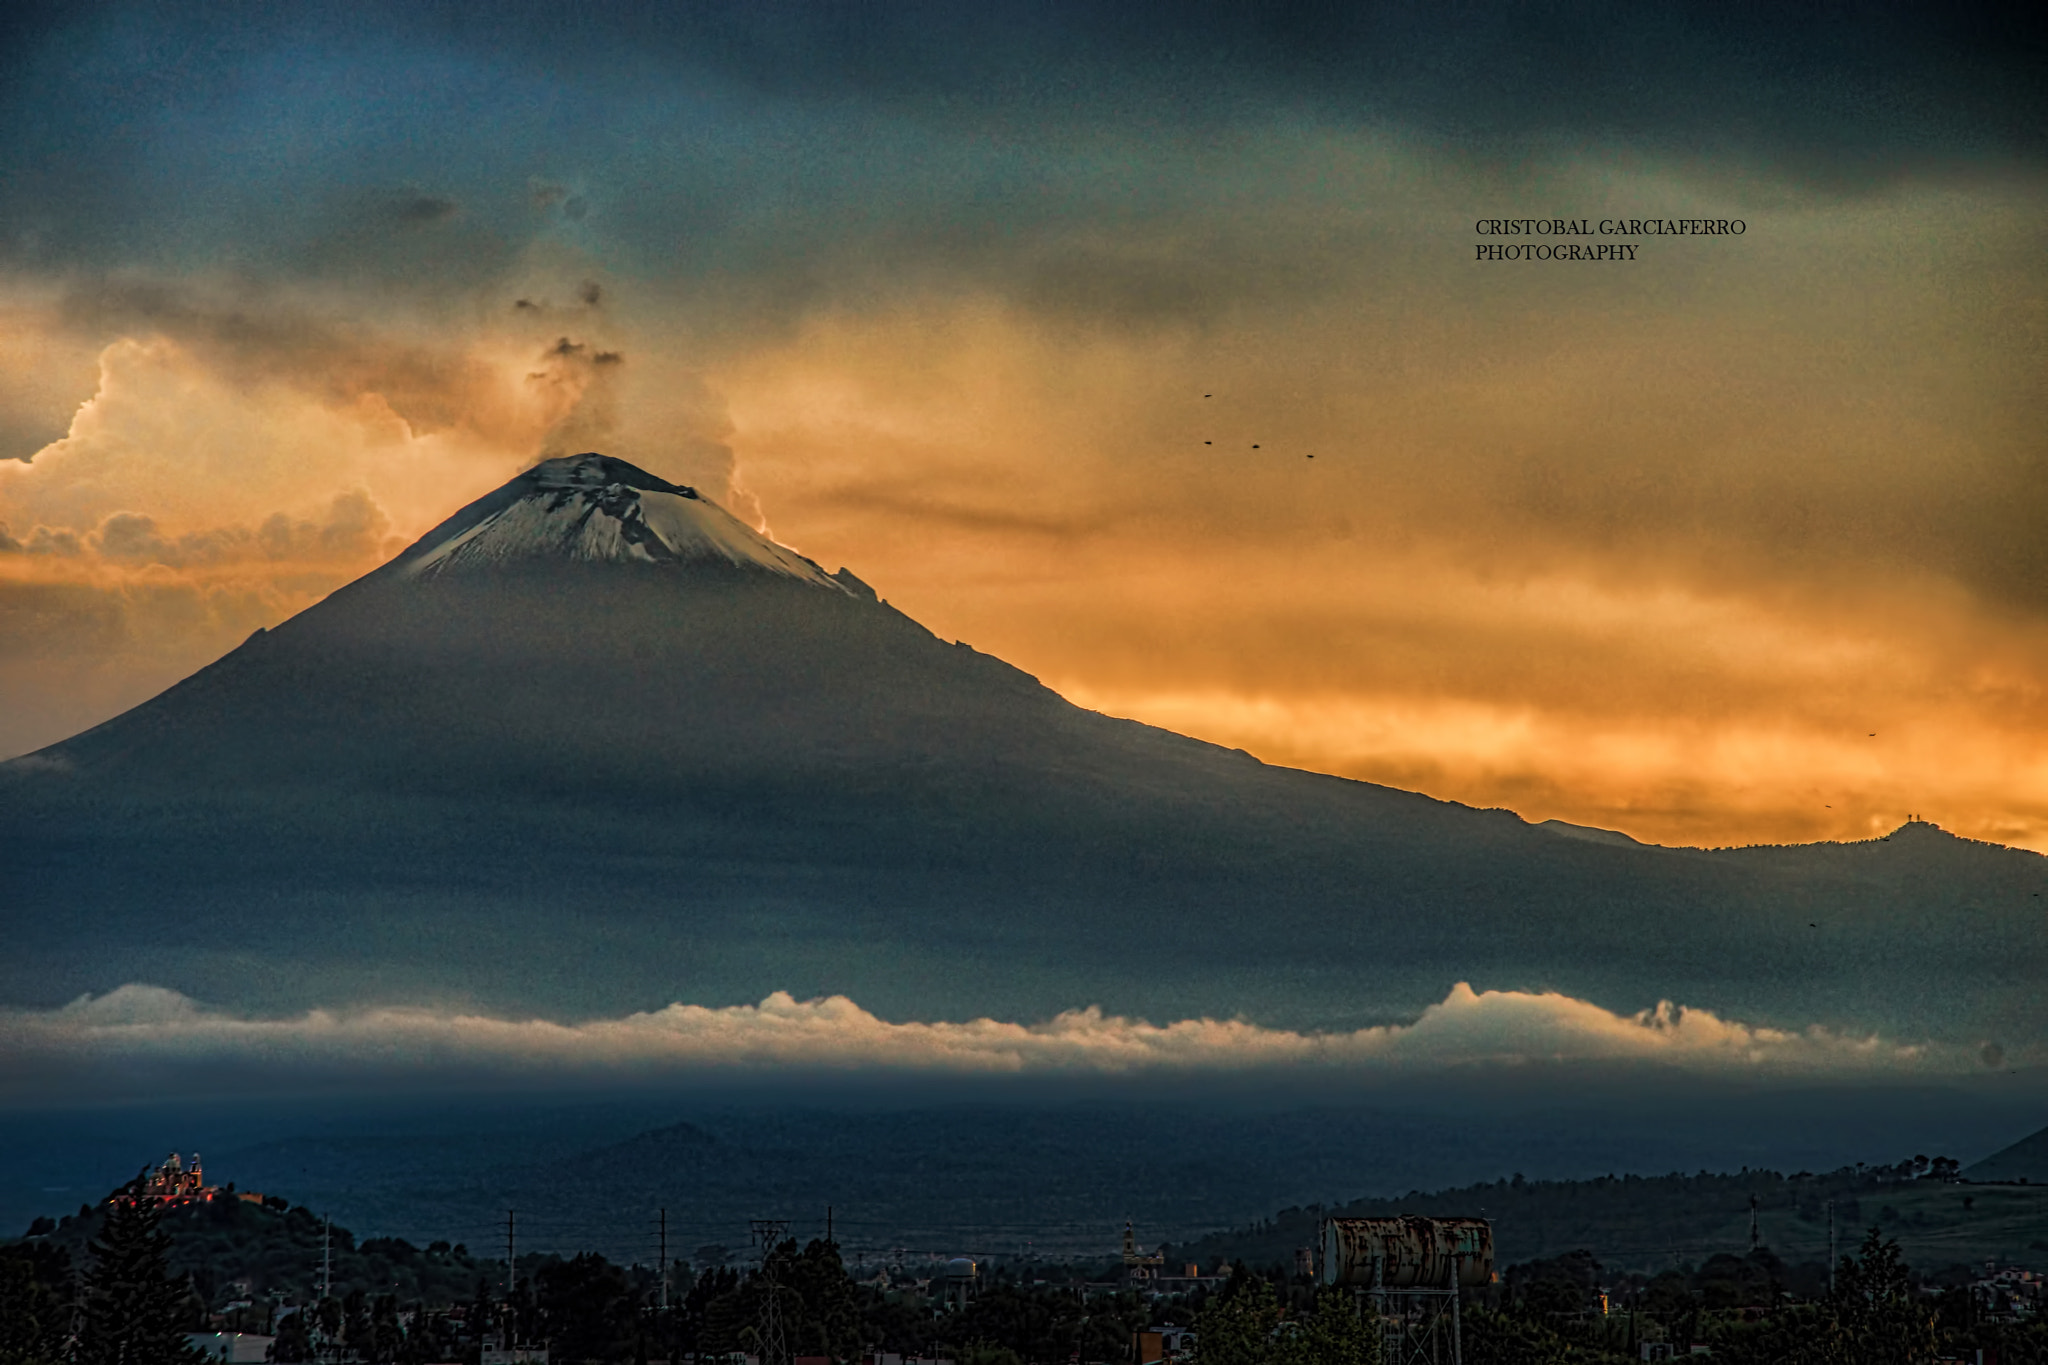 Photograph A very special Sunset by Cristobal Garciaferro Rubio on 500px